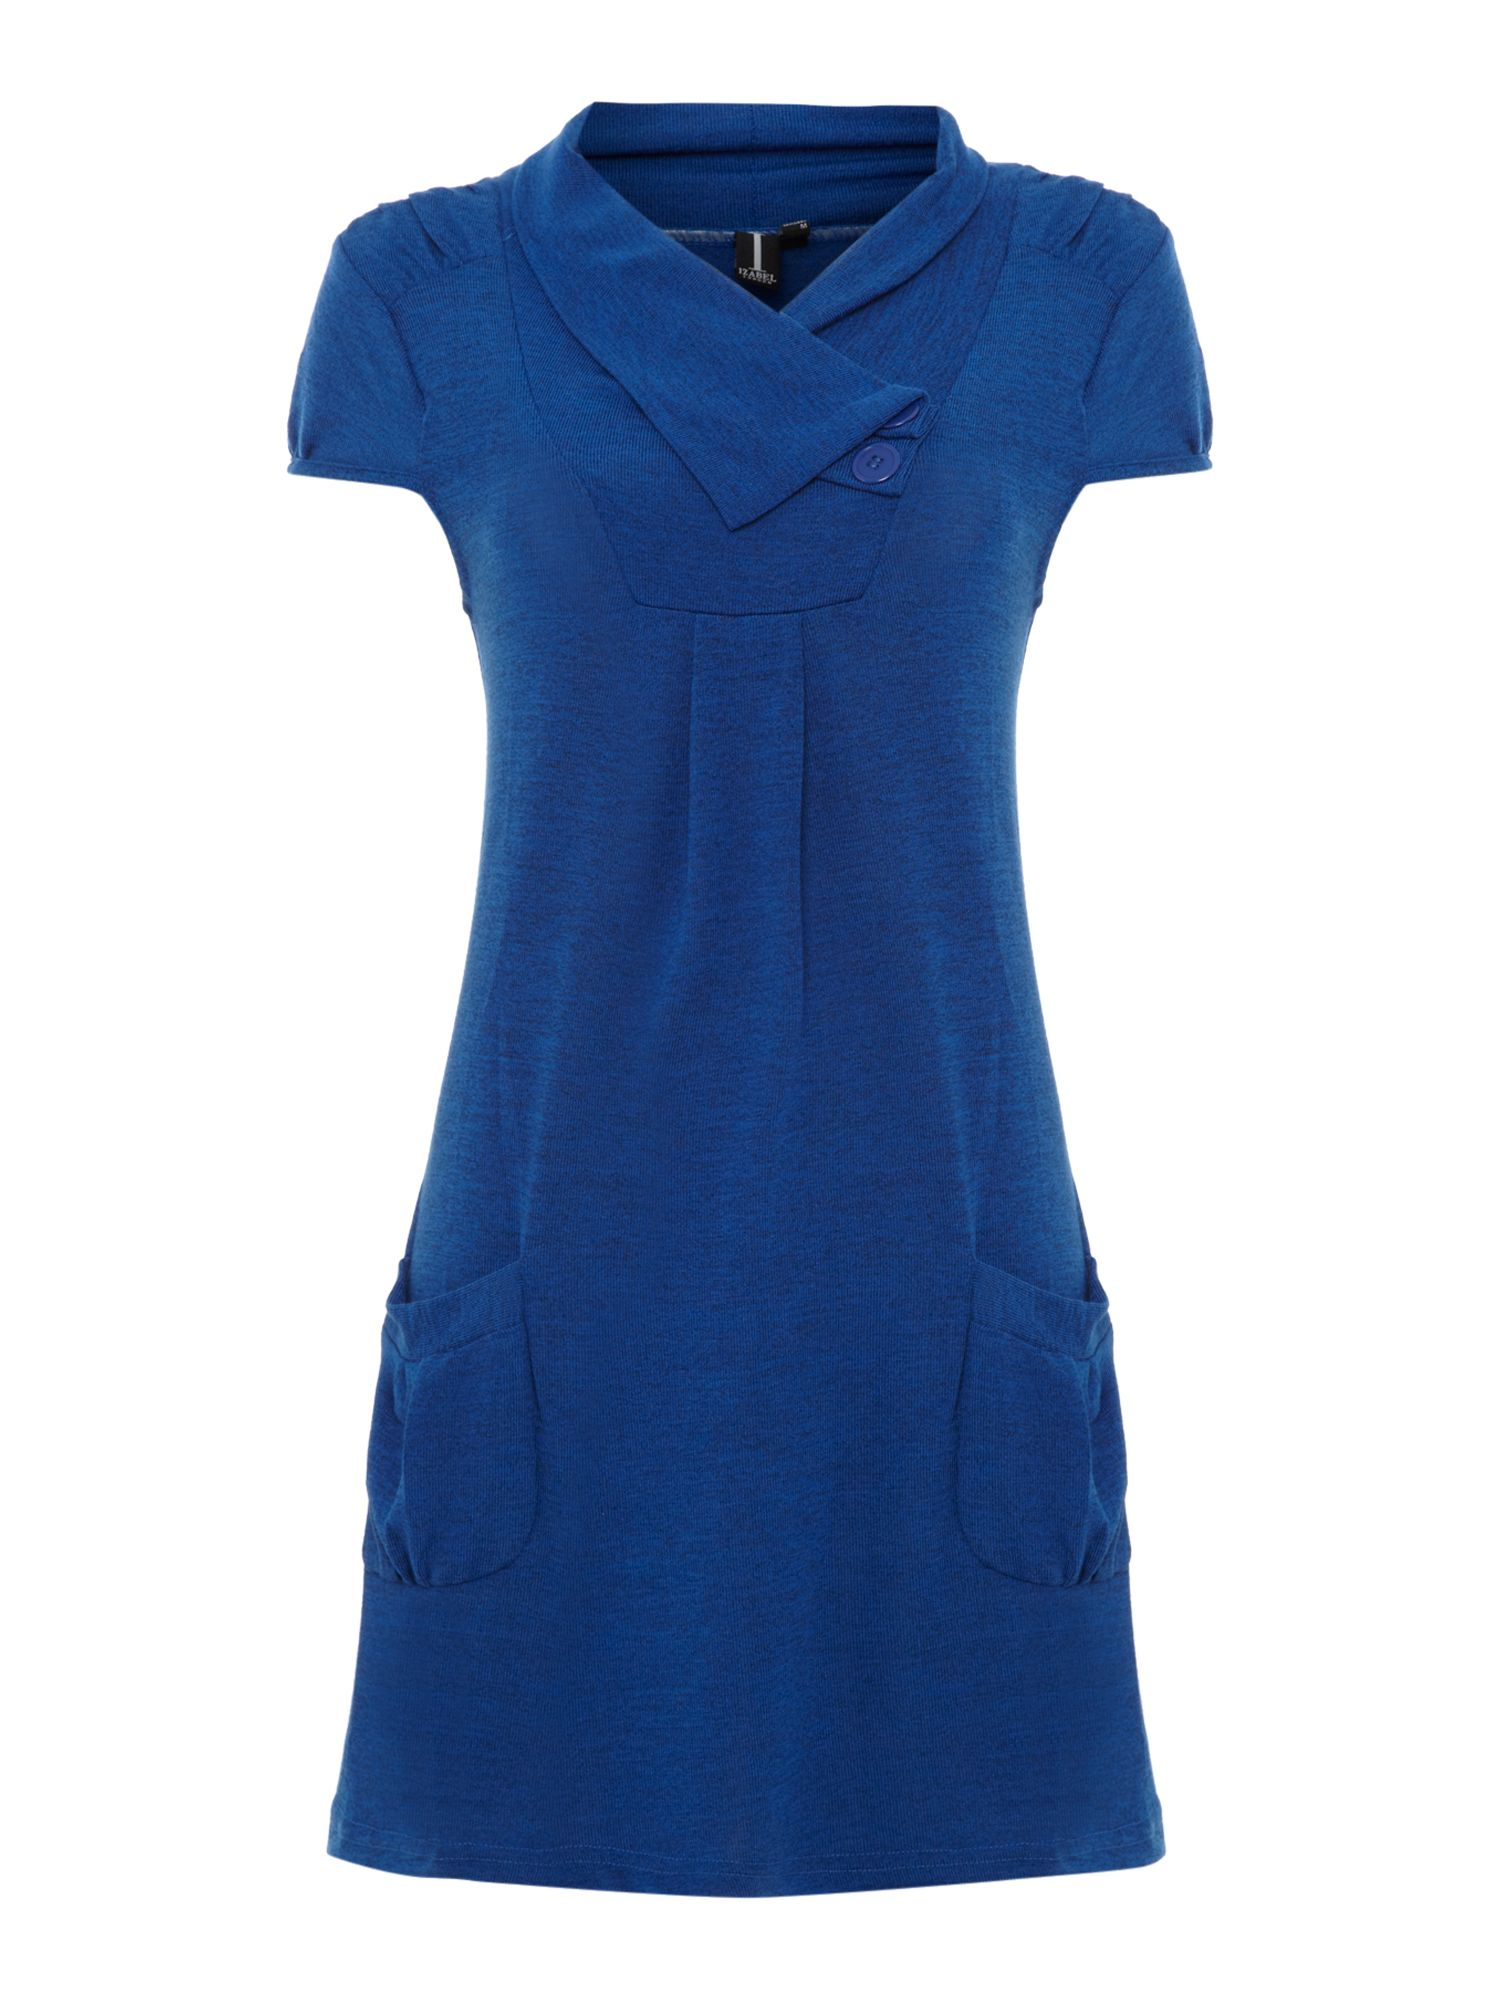 Cowl neck tunic top in marl